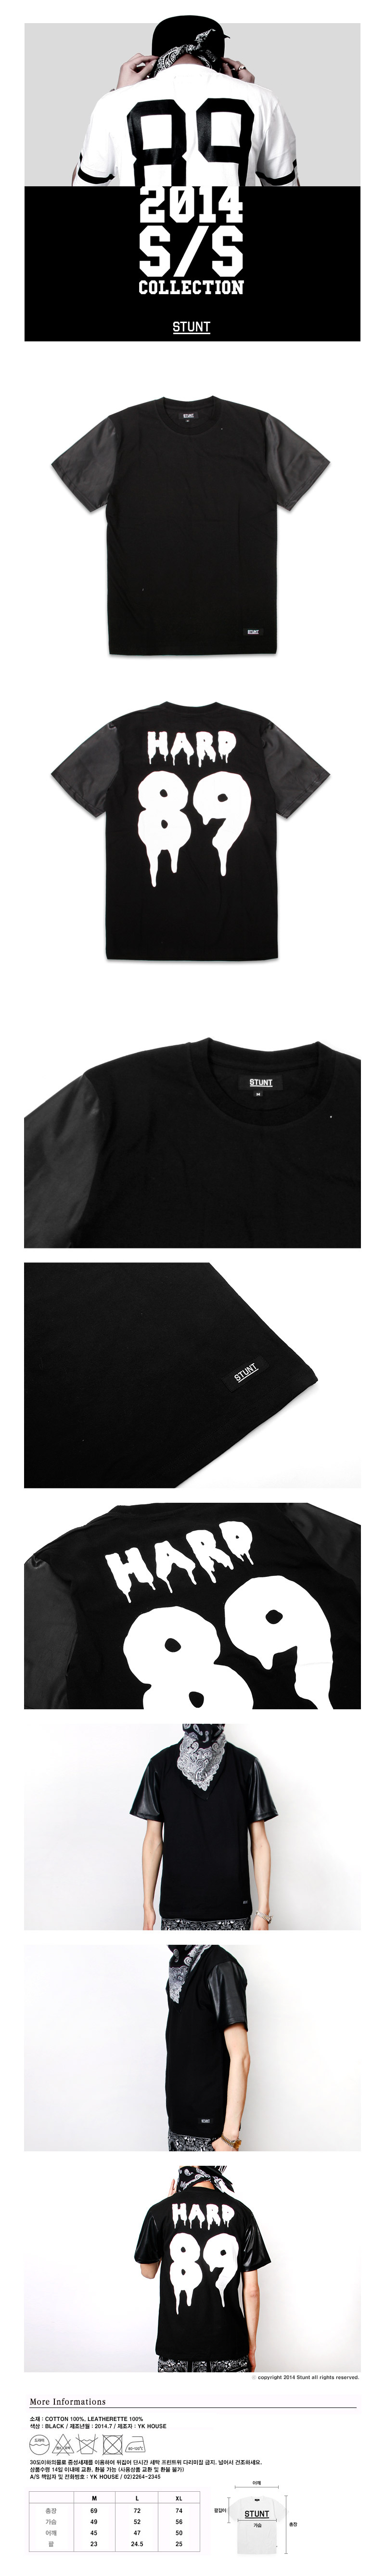 스턴트 Leather Sleeved Tee (Black)